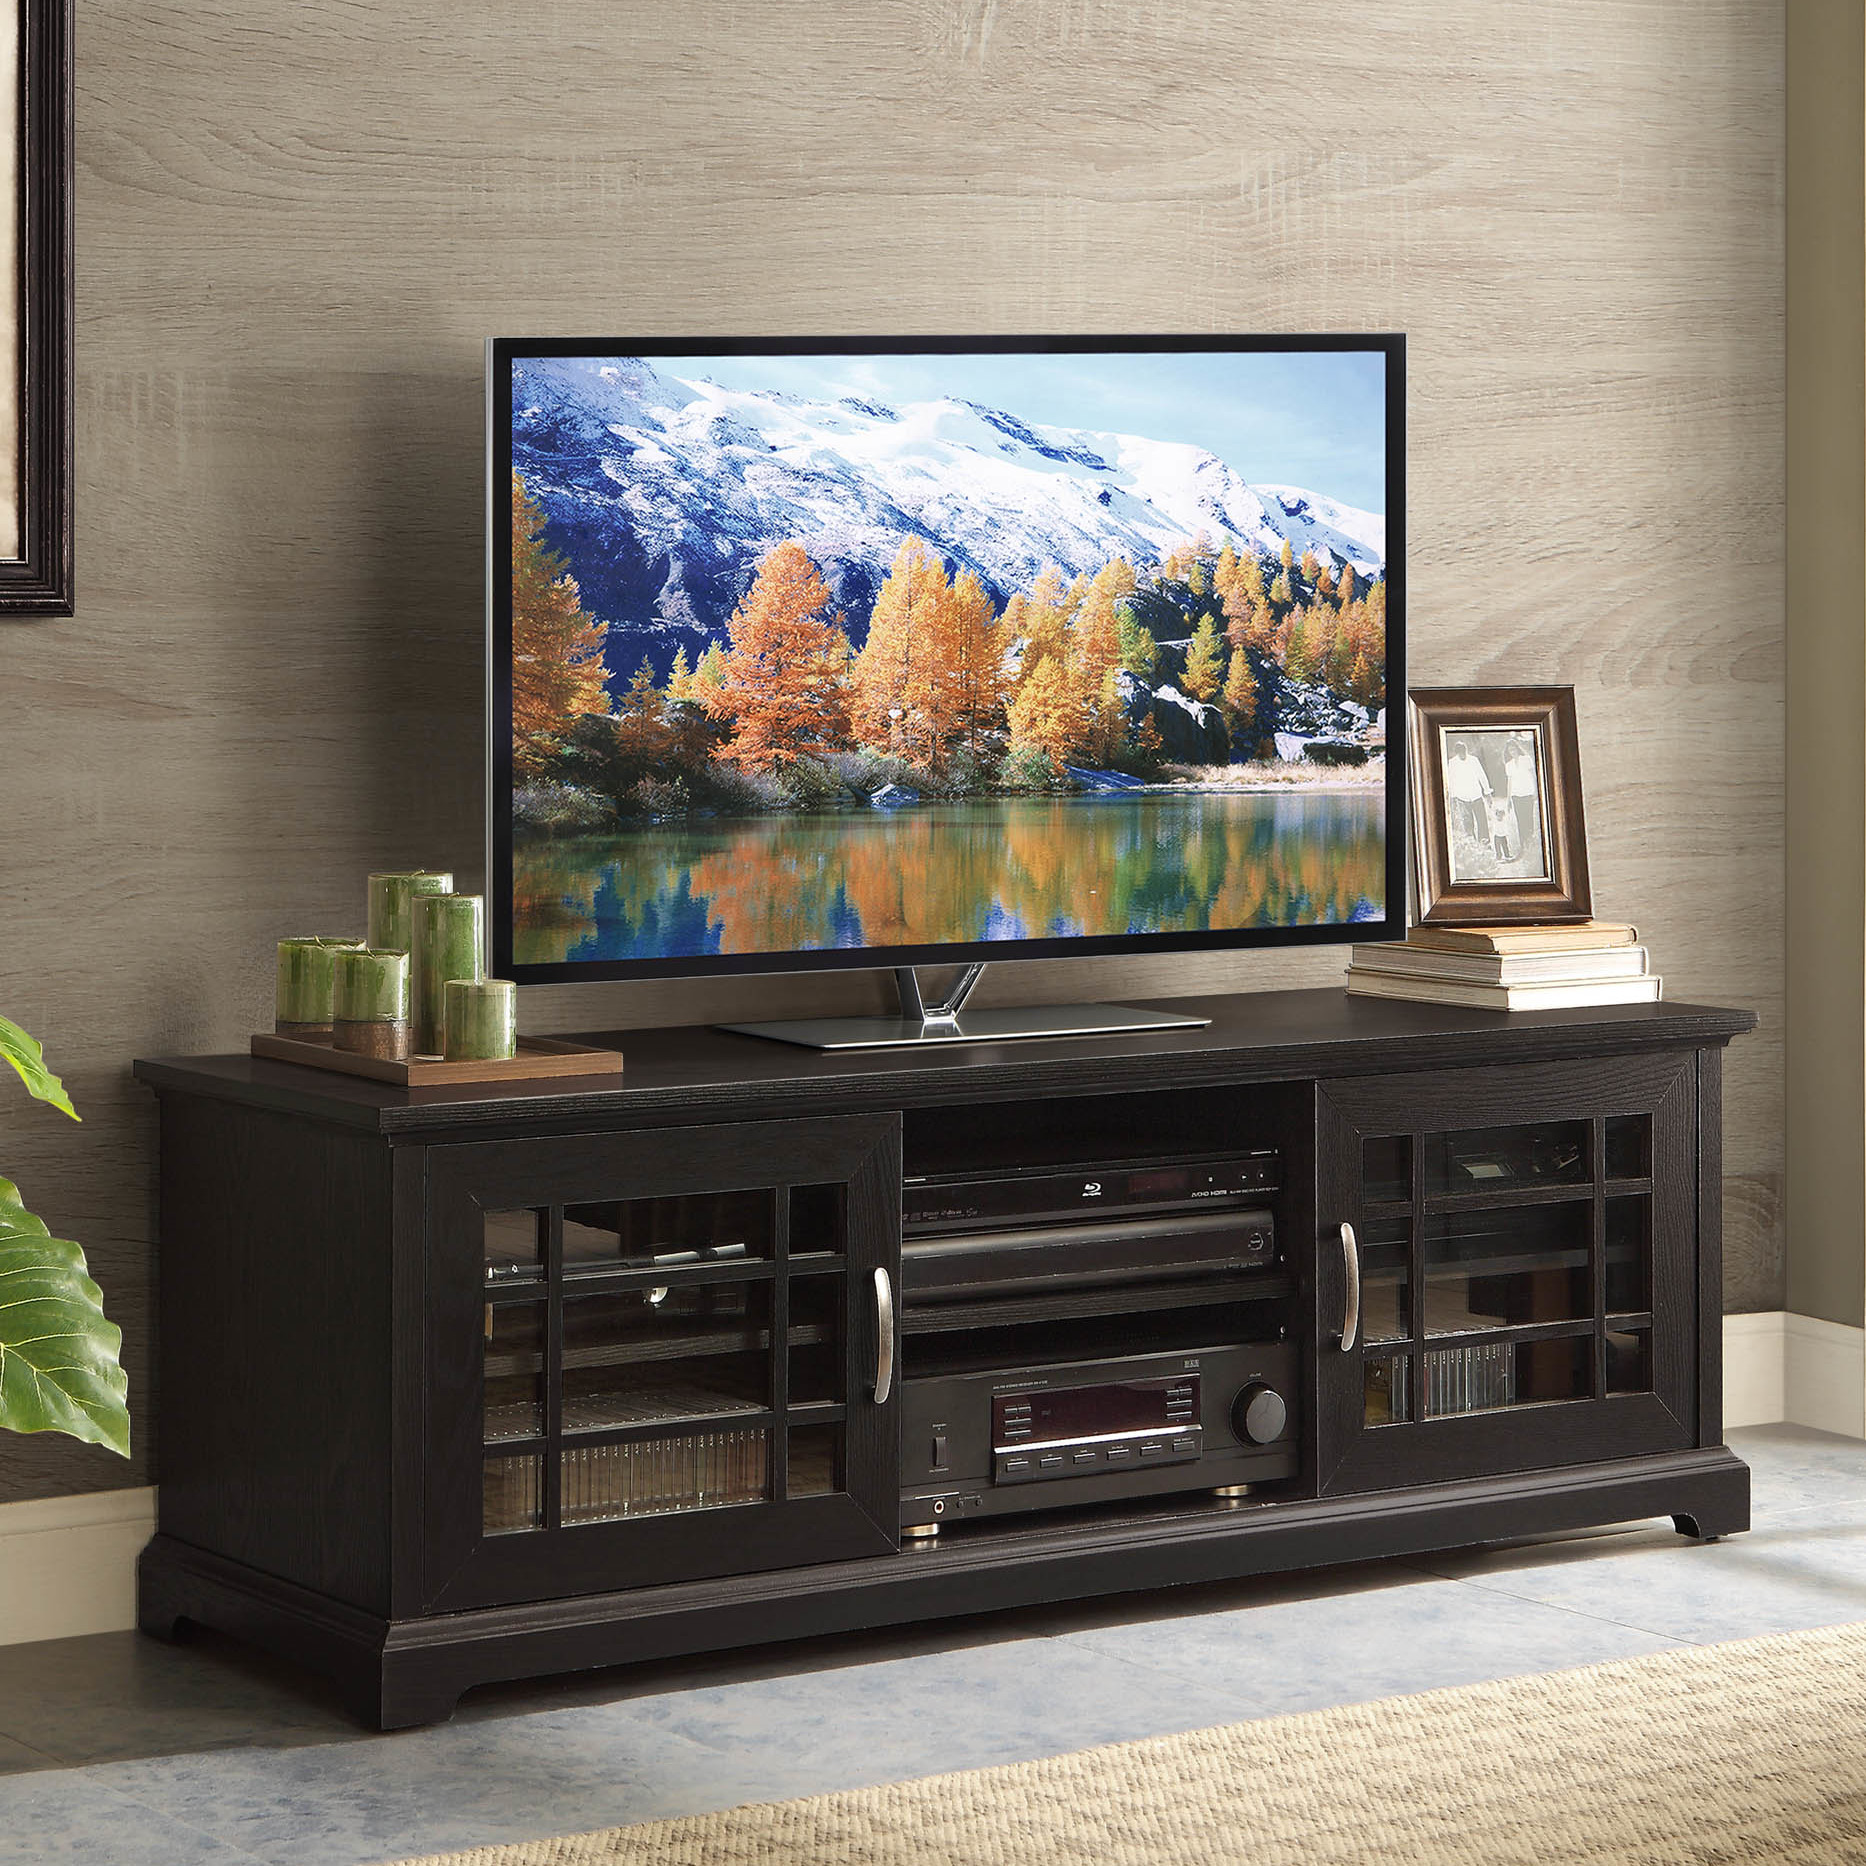 Magnificent whalen tv stand for home furniture design with whalen 3-in-1 tv stand